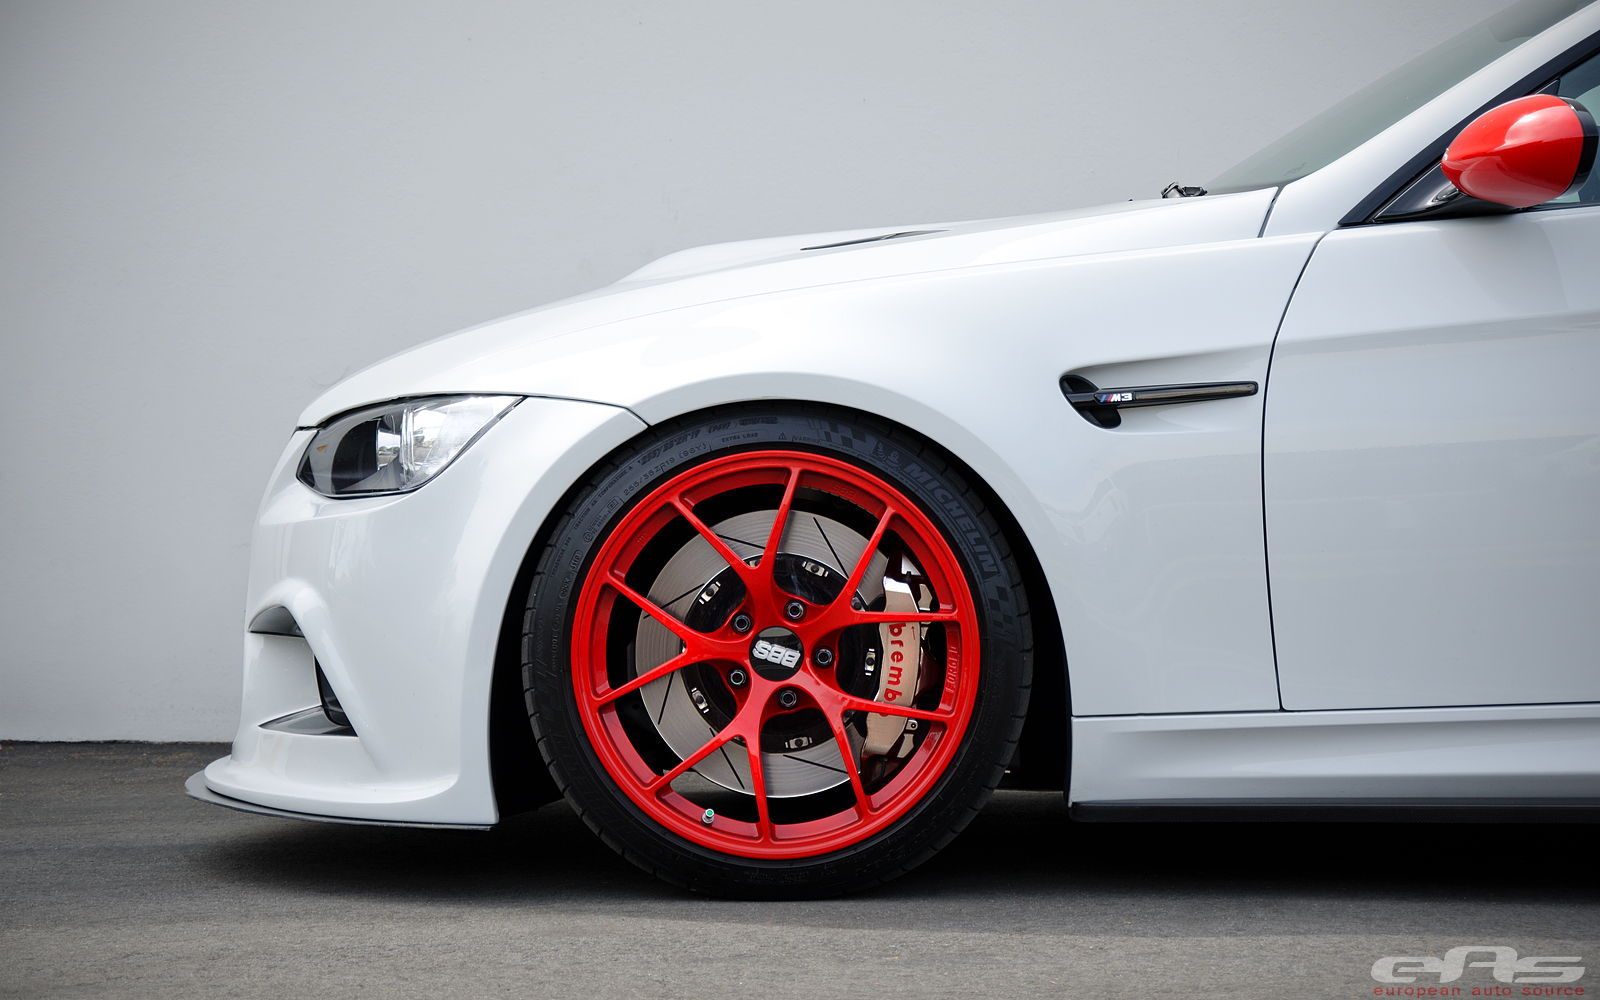 572 Whp Bmw E92 M3 From Eas Overkill Autoevolution